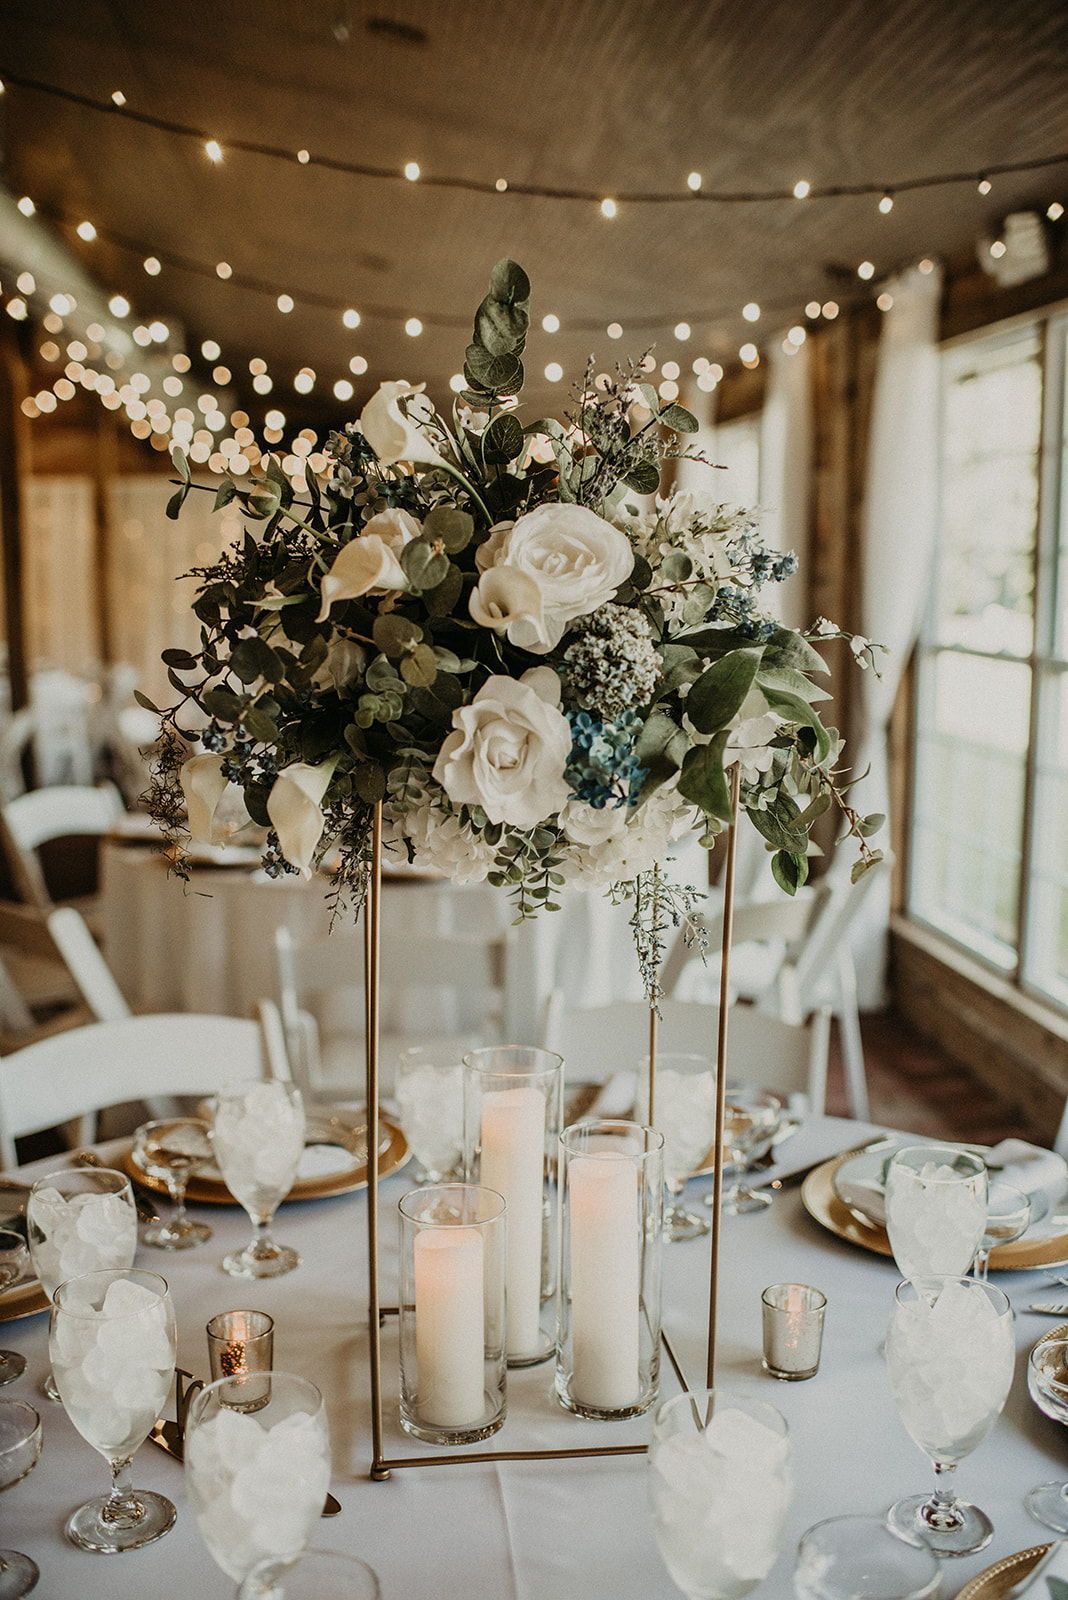 Modern Inspiration At A Rustic Wedding Venue | Cro